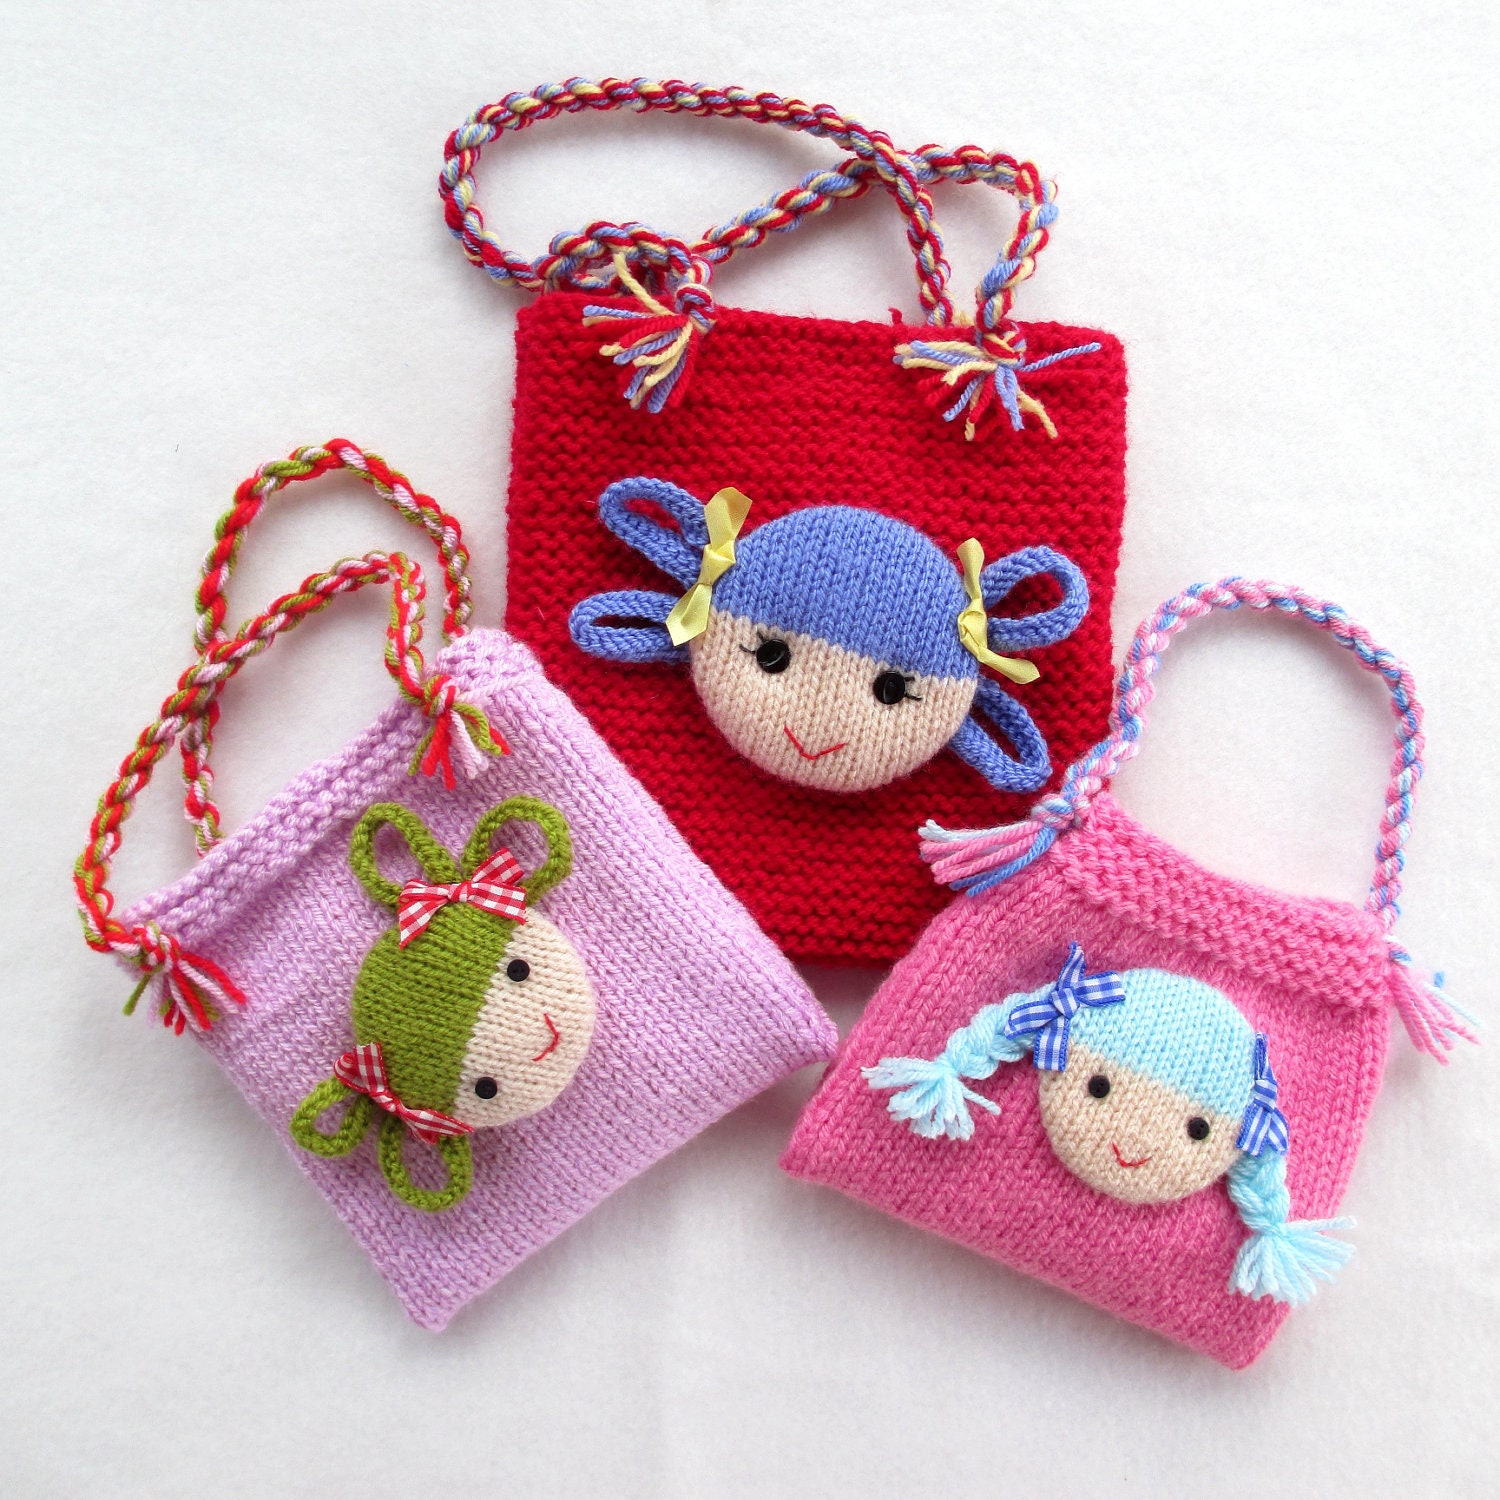 Knitted Bags Patterns : Jolly Dolly Bags knitting patterns INSTANT DOWNLOAD